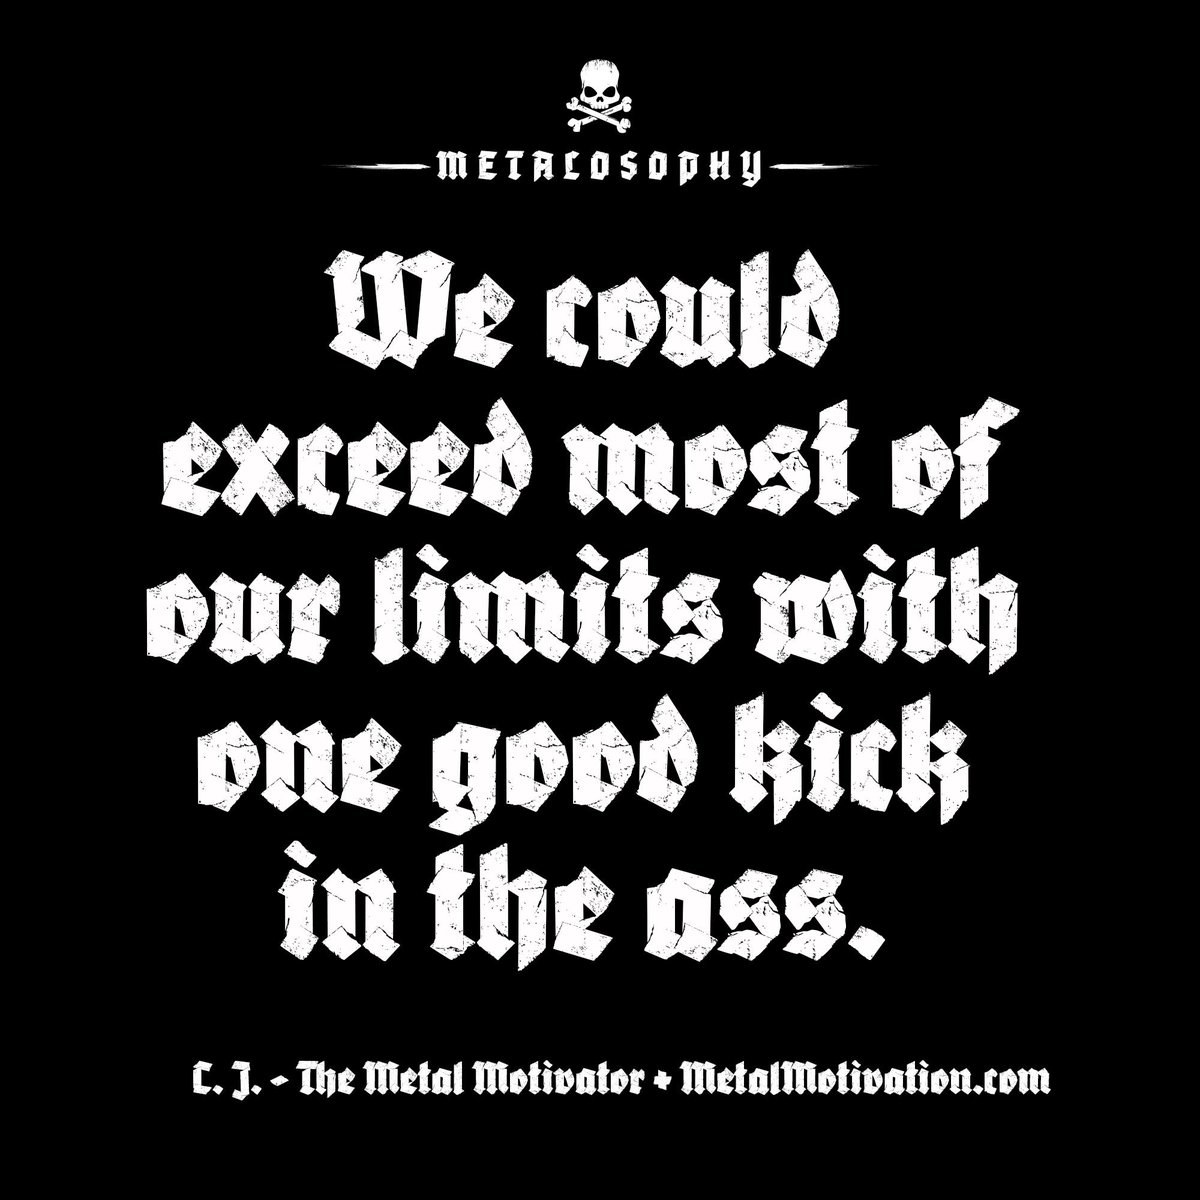 I absolutely love the motivational messages from Metal Motivation. Straight to the point and spot on. Let's make it an ass-kicking hump day Wednesday!  #morningmotivation <br>http://pic.twitter.com/Rn767XFtBa